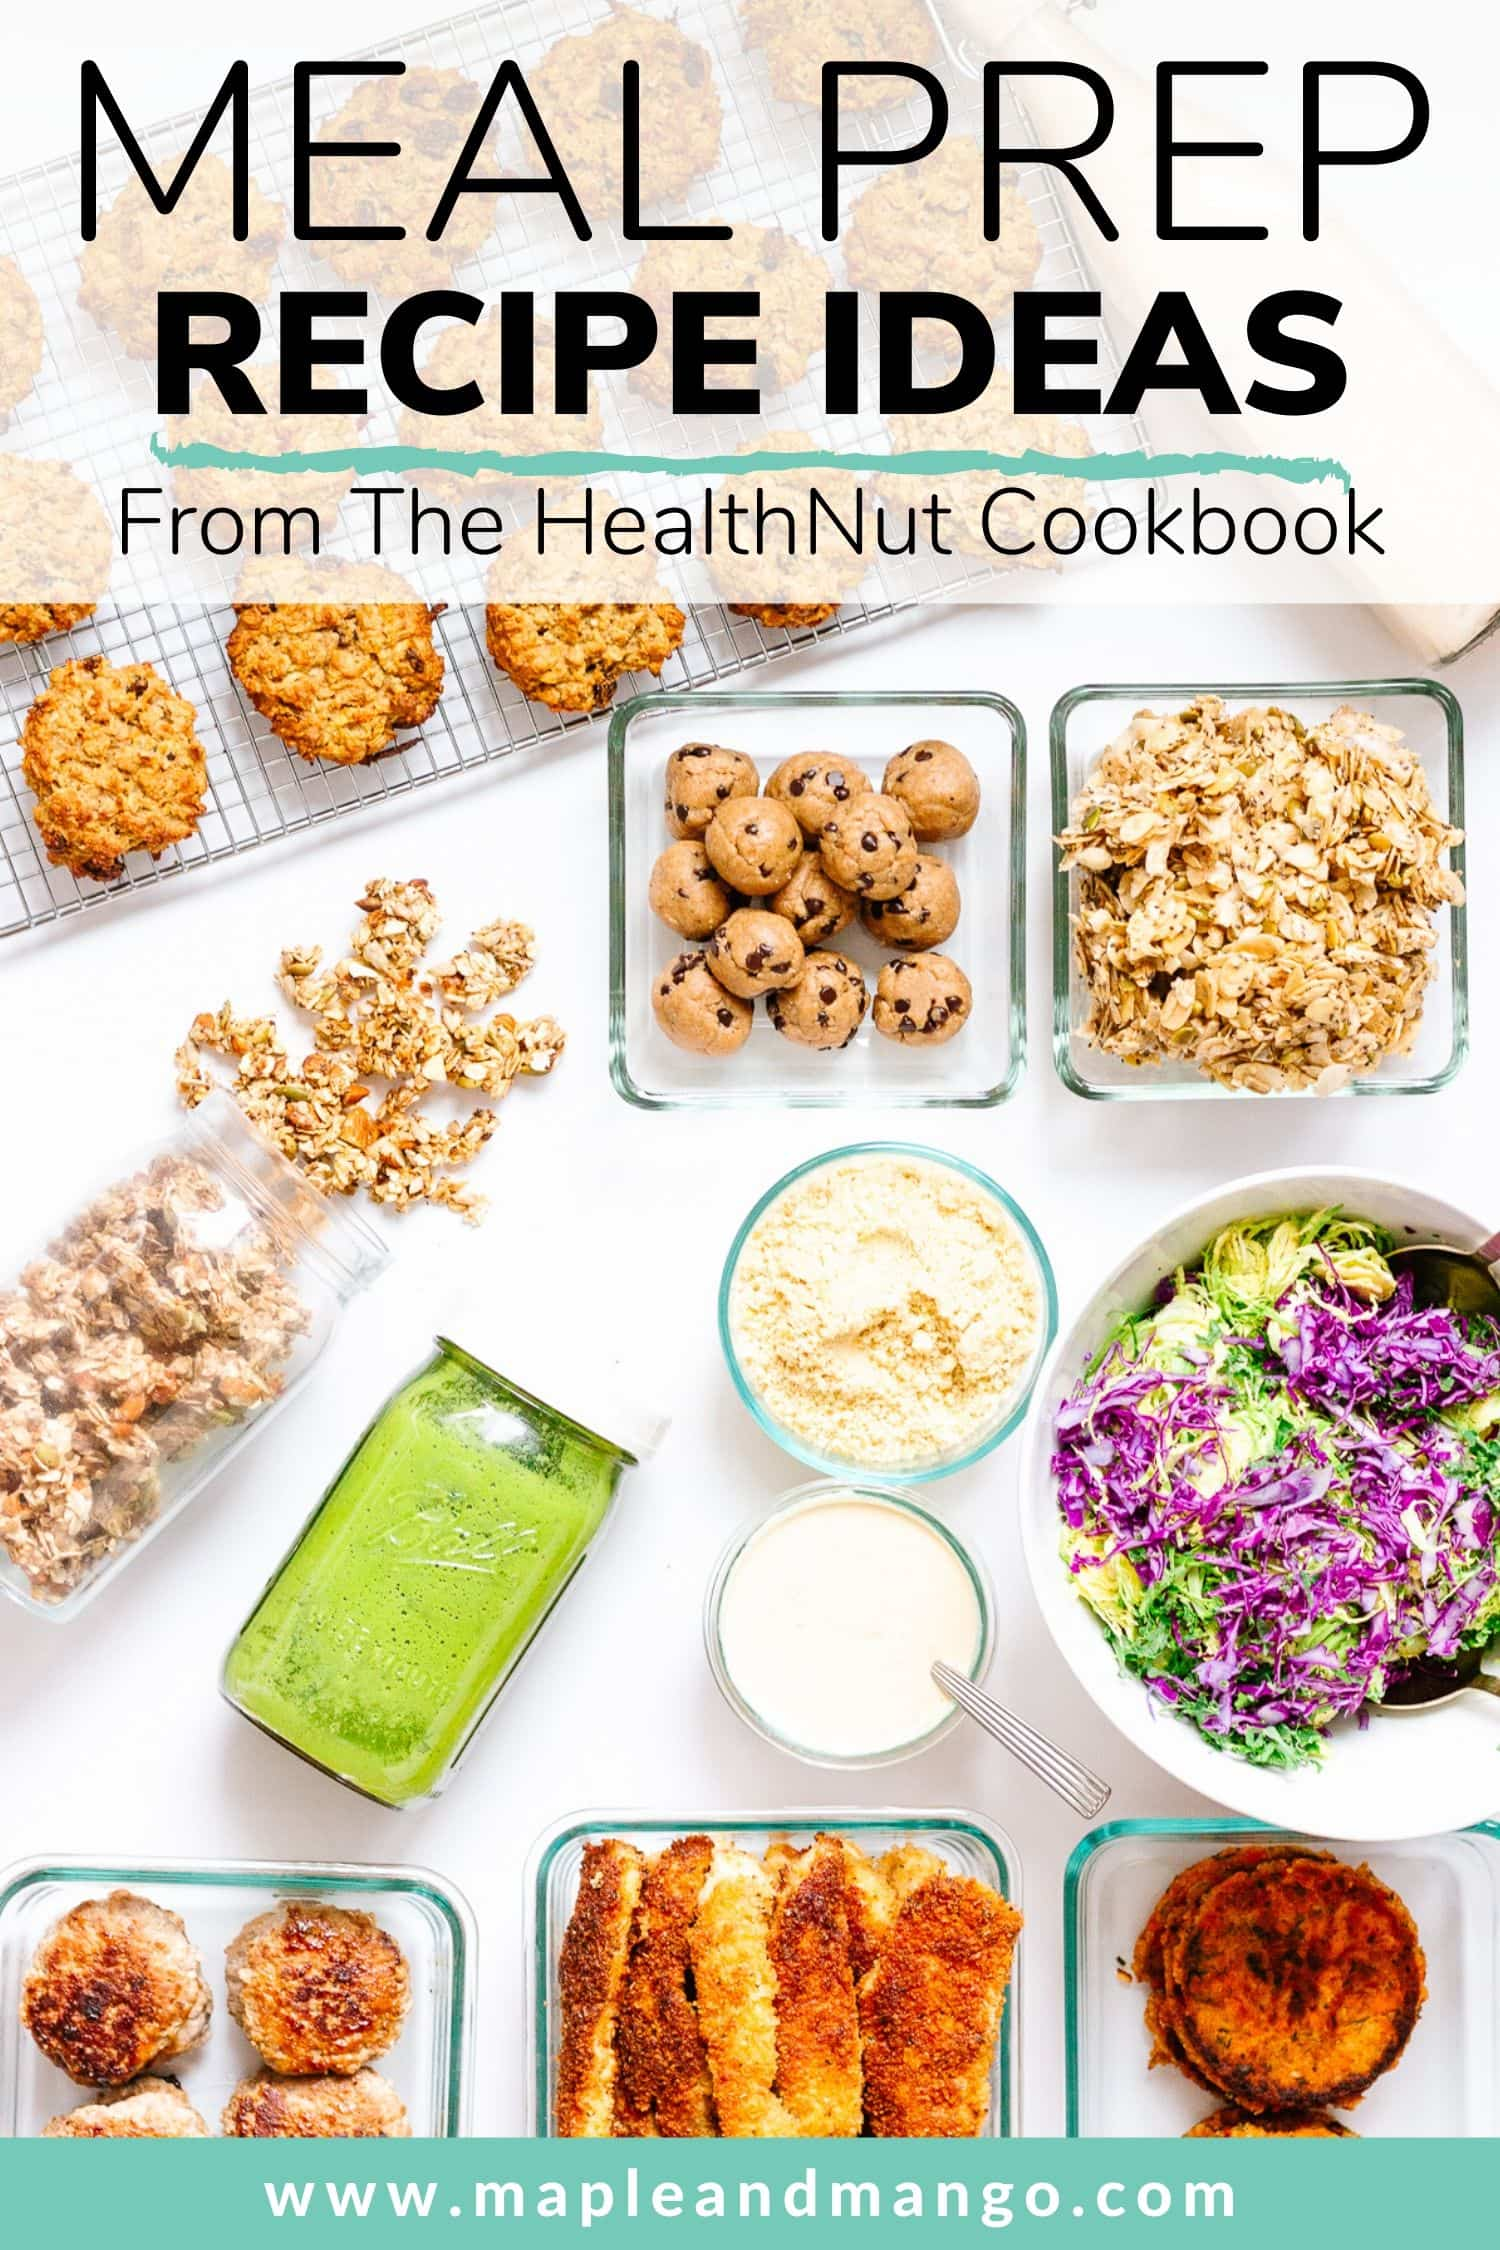 Pinterest image for healthy meal prep inspired by The HealthNut Cookbook